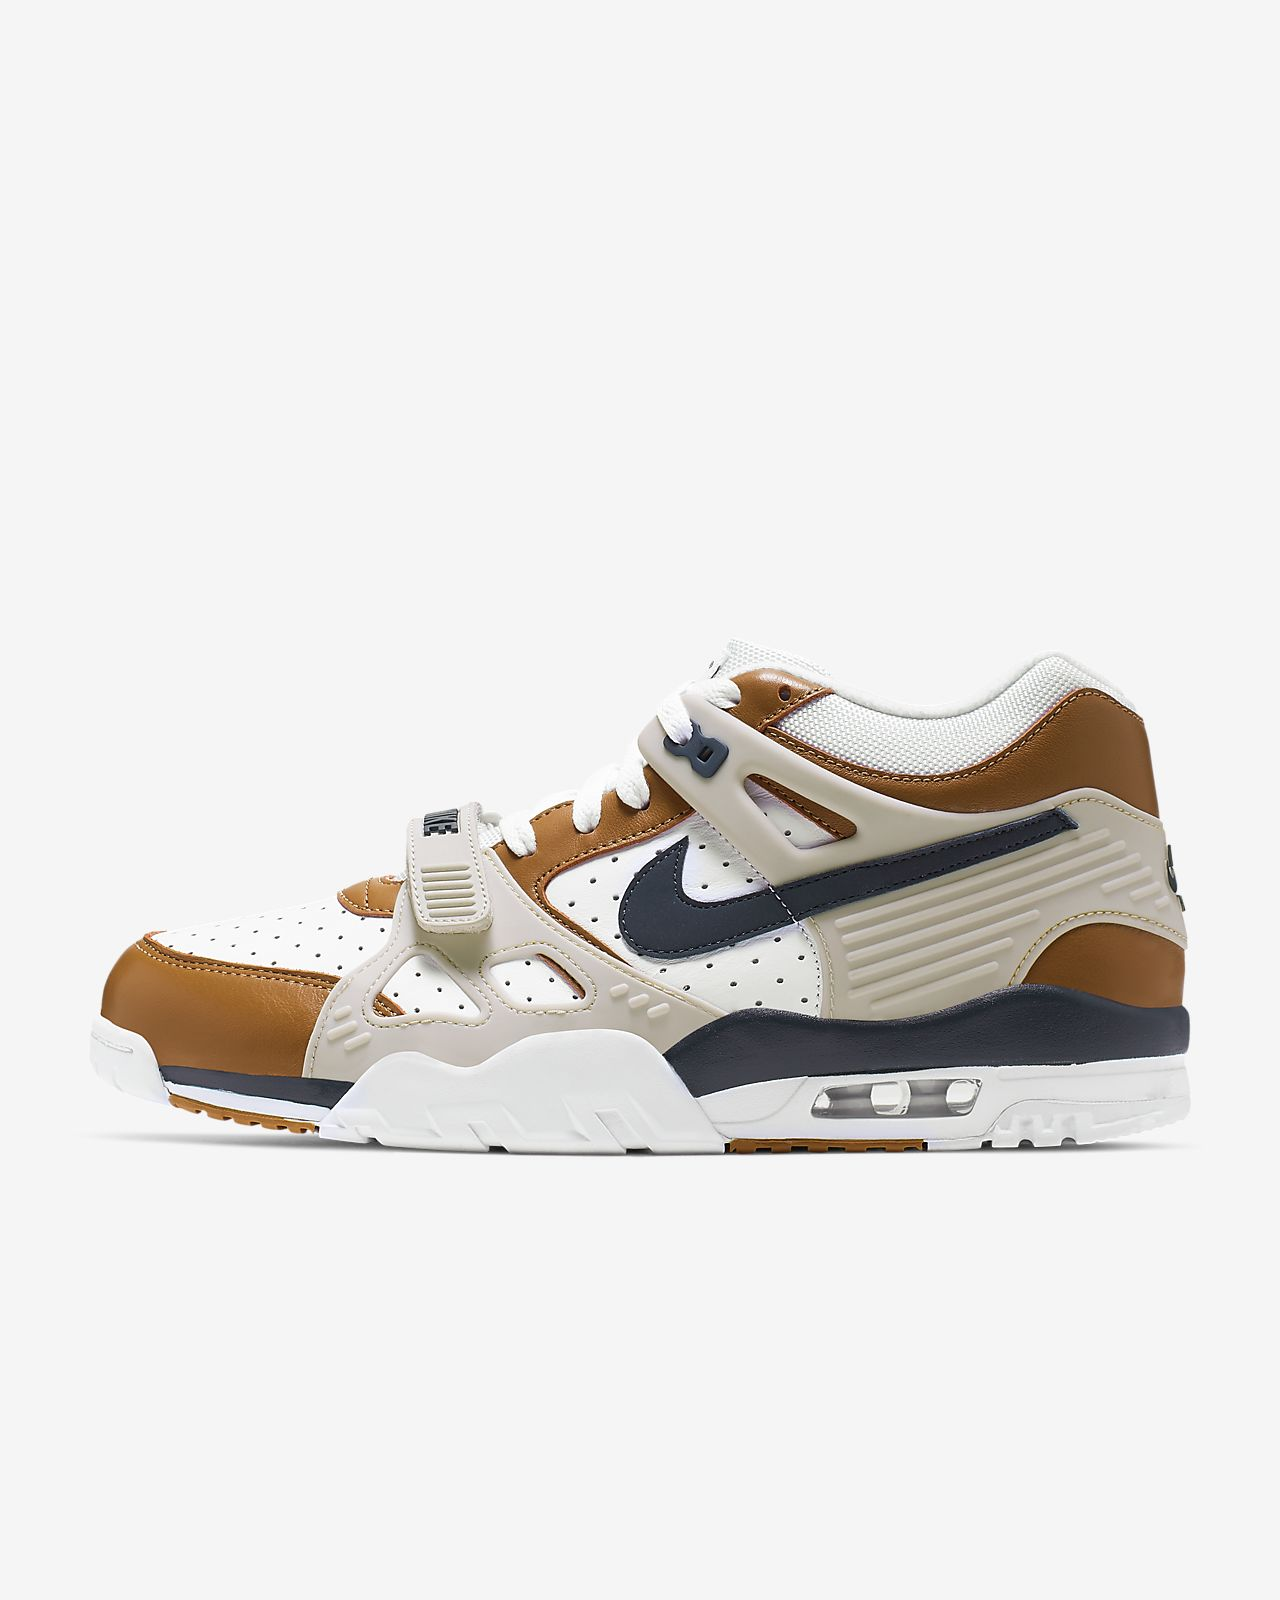 san francisco 5367c 0d144 1 449 Dh. Low Resolution Chaussure Nike Air Trainer 3 QS pour Homme  Chaussure Nike Air Trainer 3 QS pour Homme